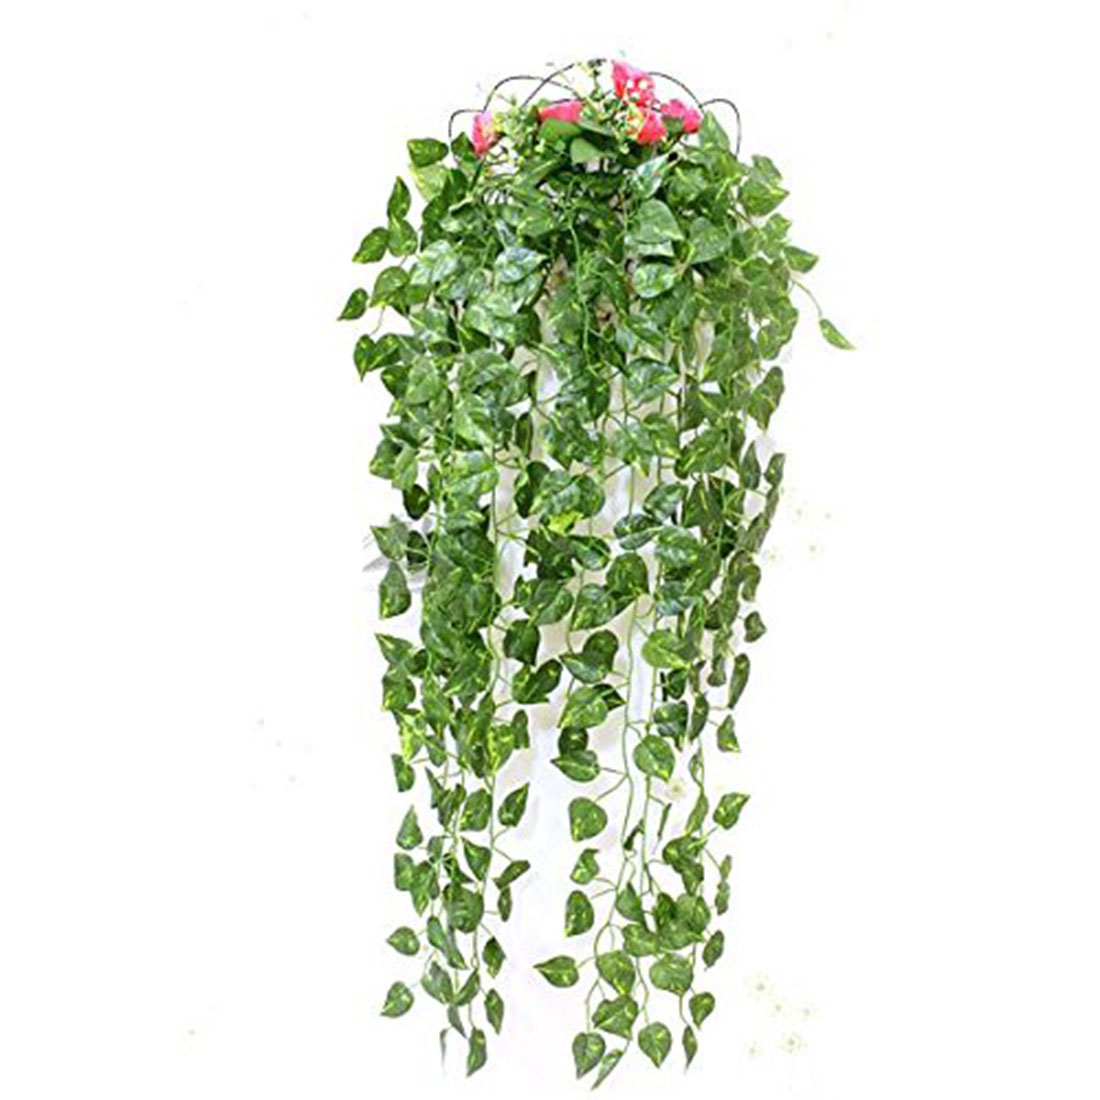 Aliexpress Decoration Mariage Aliexpress Buy Decoration Mariage Green Artificial